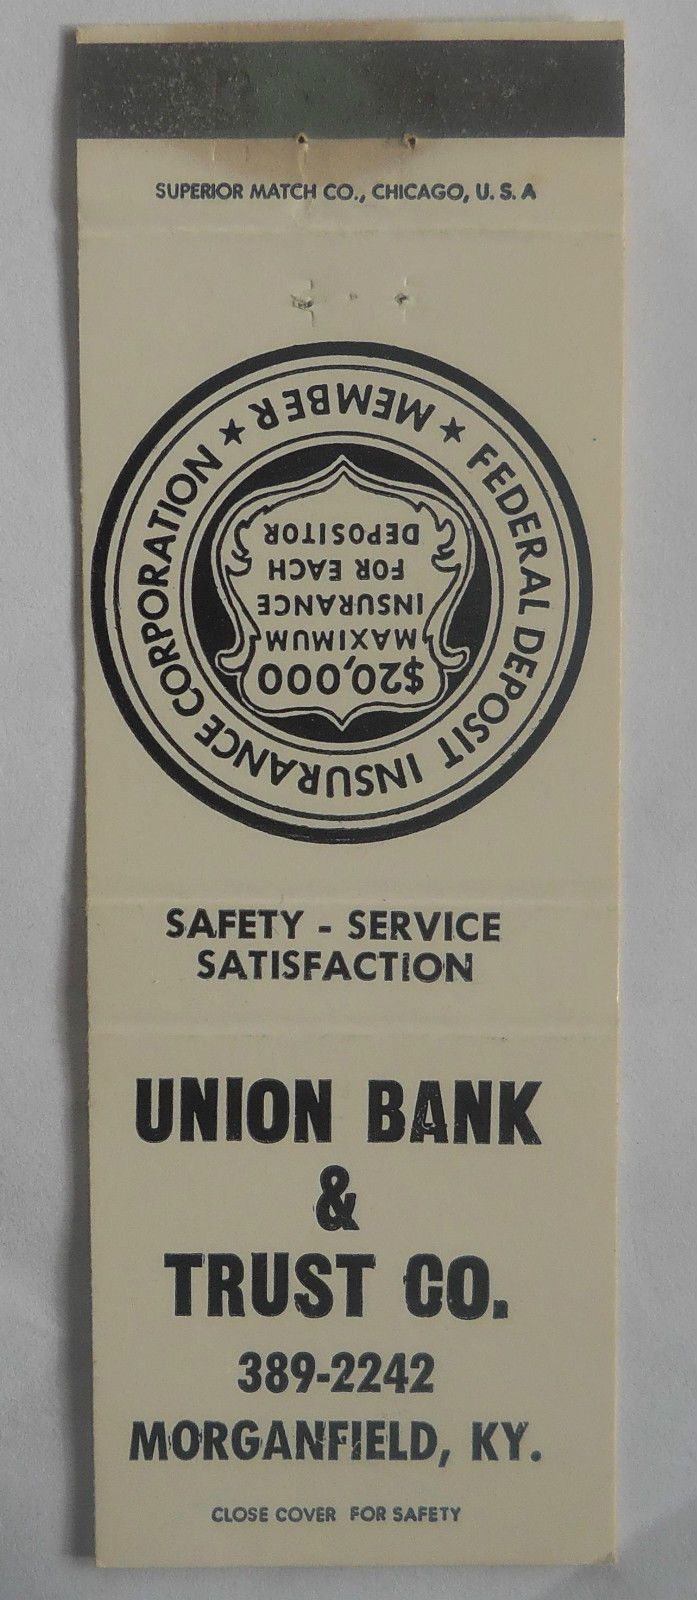 337 Union Bank And Trust Co Morgan Field Ky With Images Loan